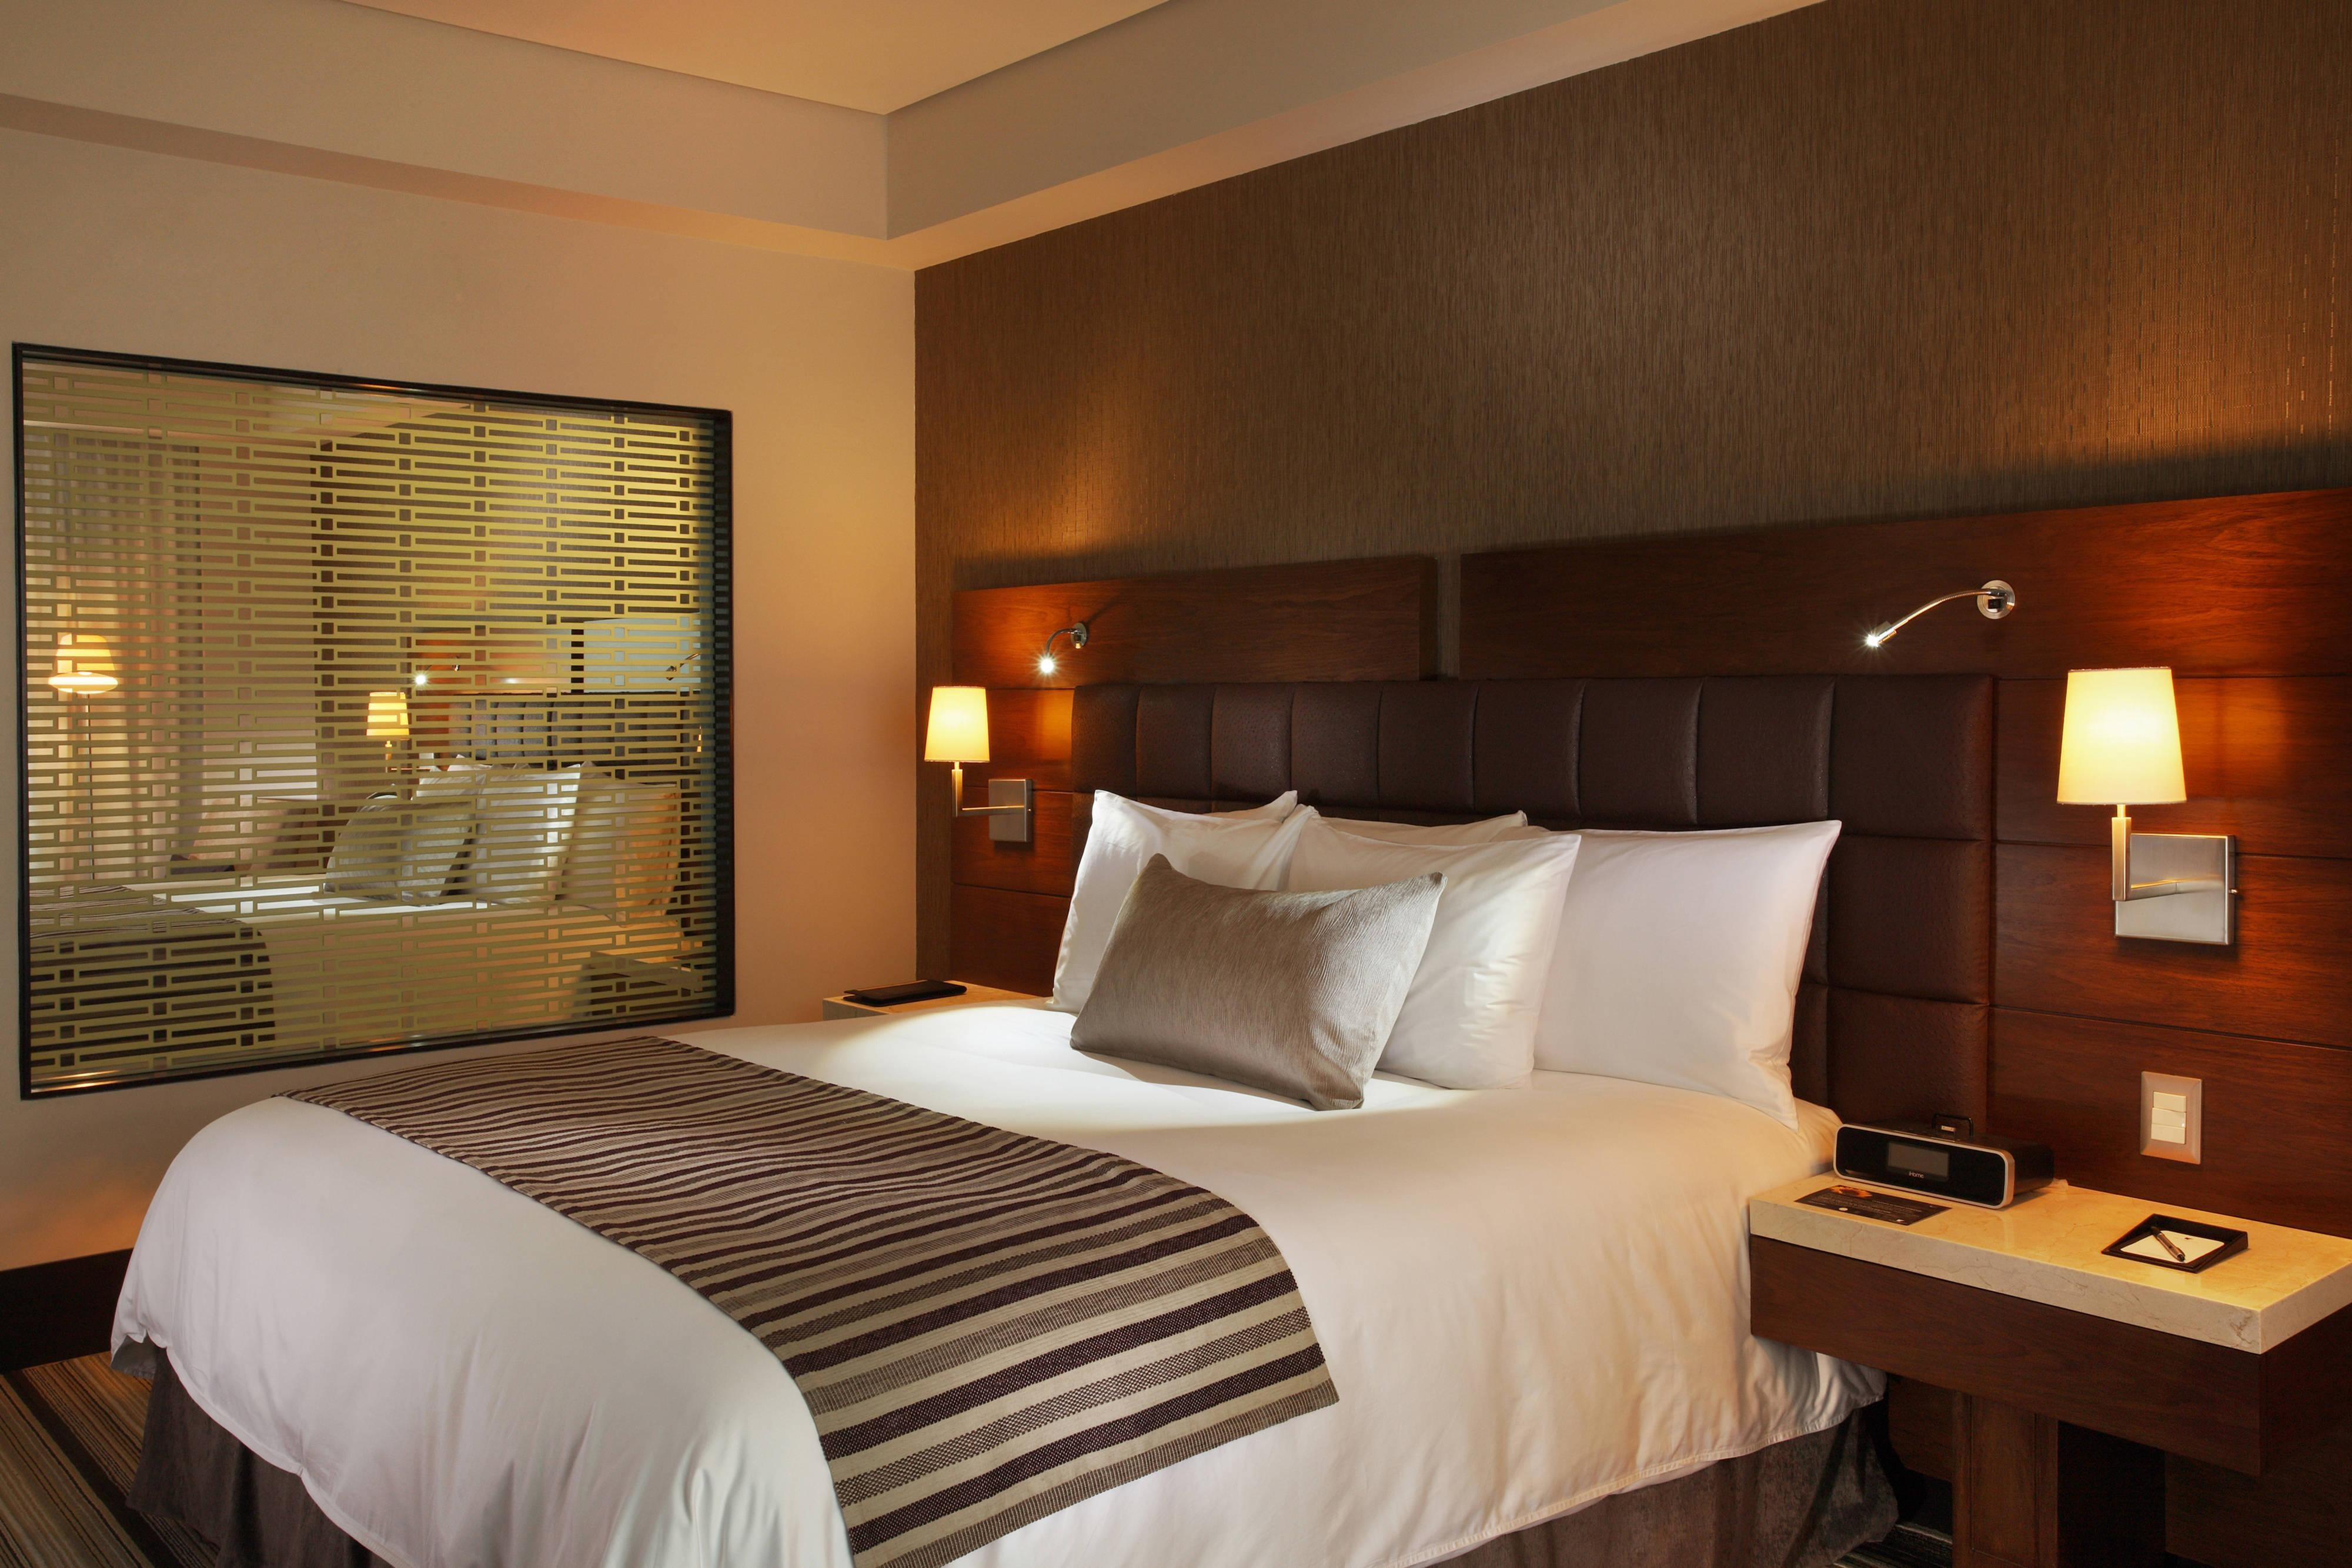 Luxury Hotels In Santa Fe Mexico City Jw Marriott Hotel Mexico